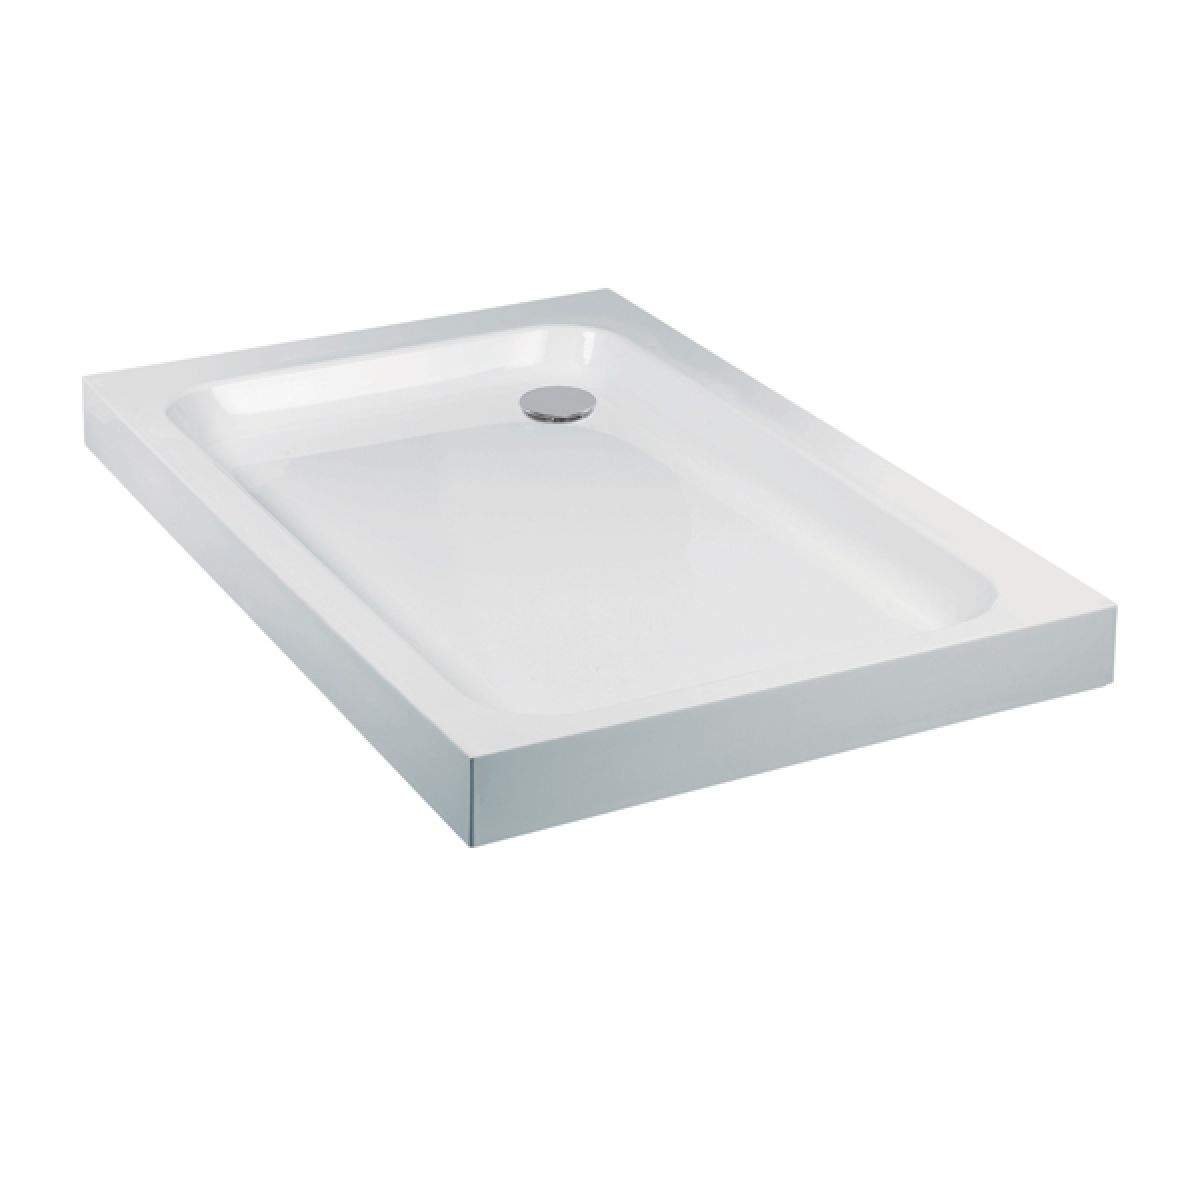 Frontline Standard Rectanglular Shower Tray 1700 x 700mm